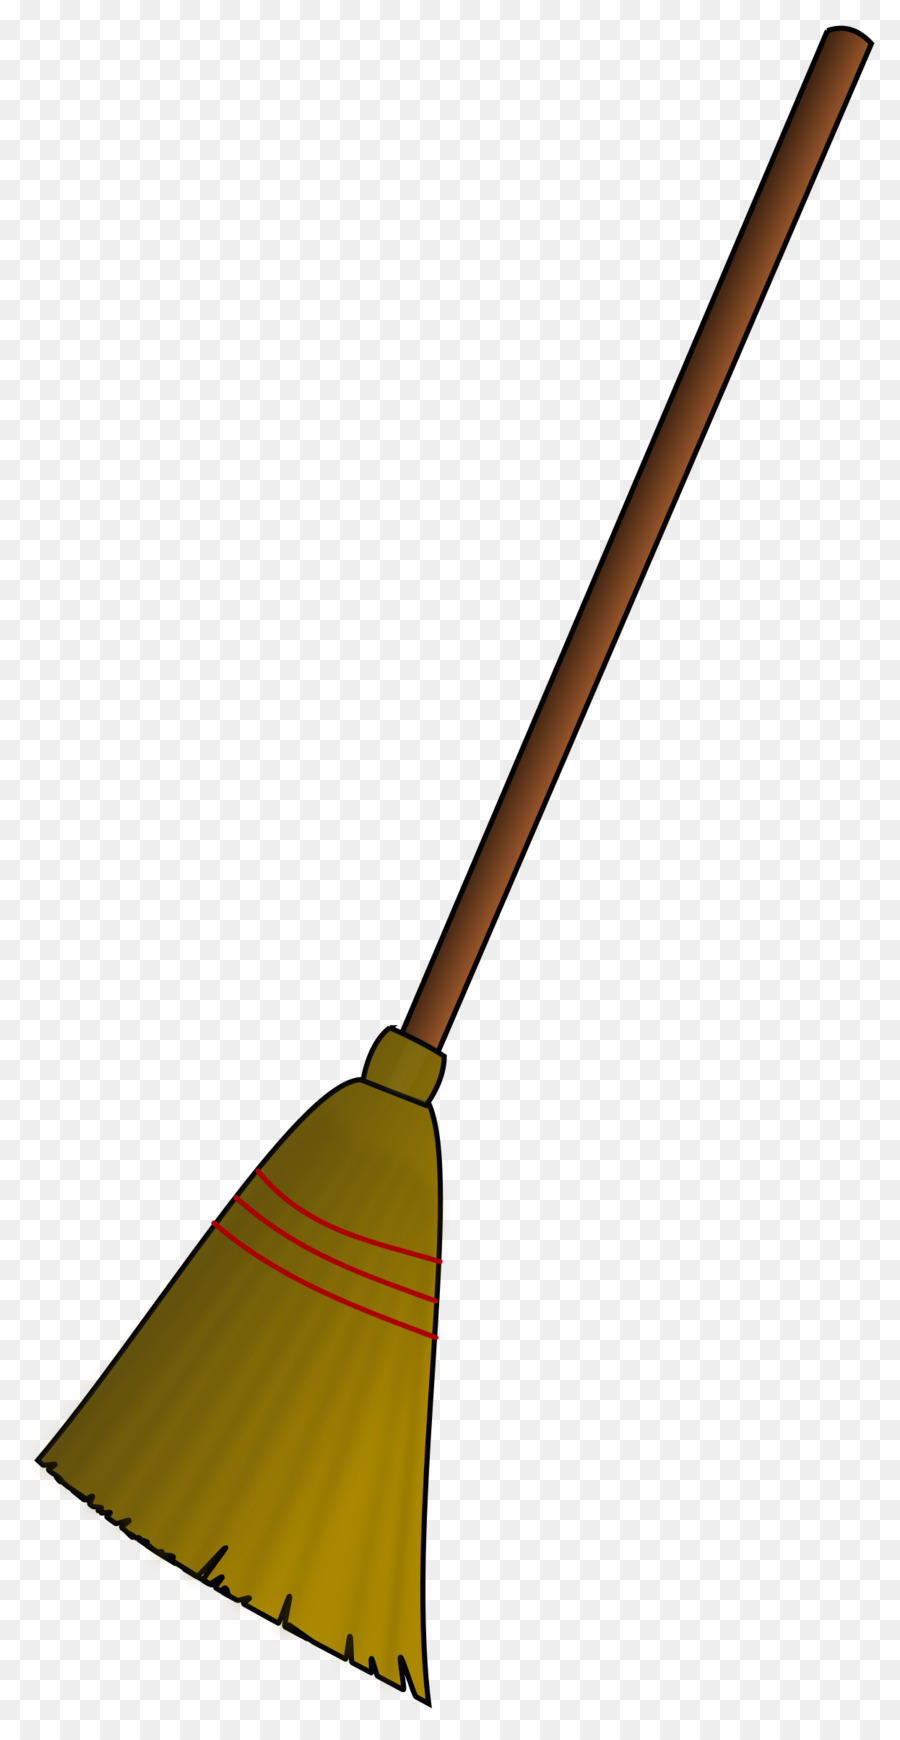 900x1740 Broom Cleaning Clip Art